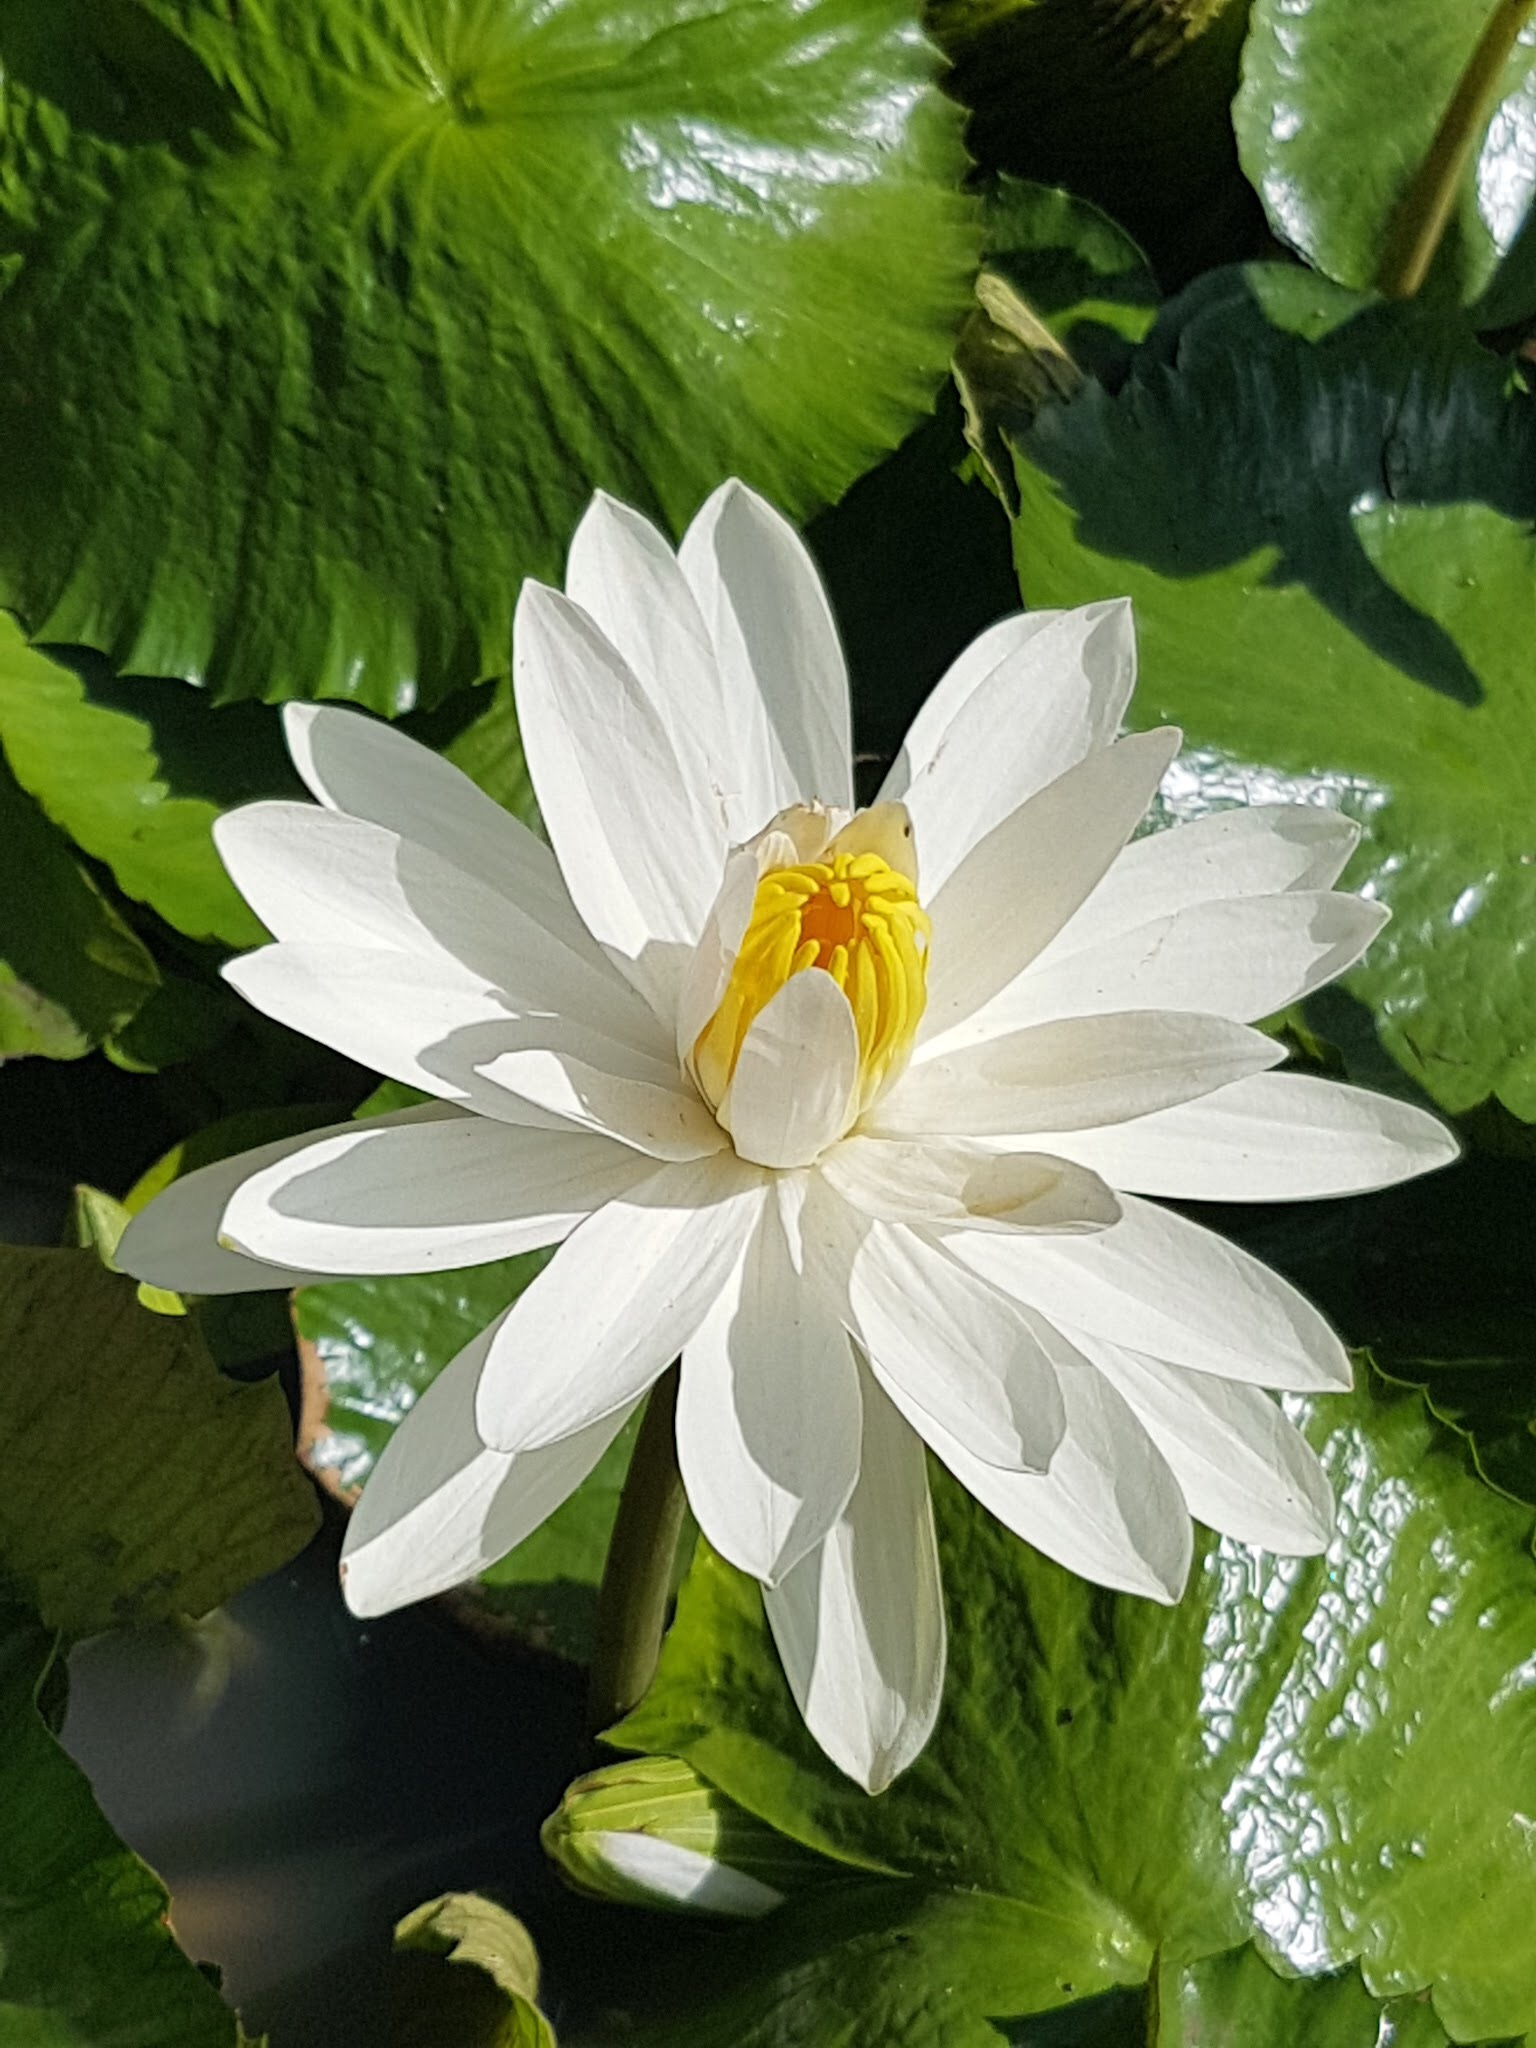 White water lily in daylight - Grenada by Nicki Fothergill